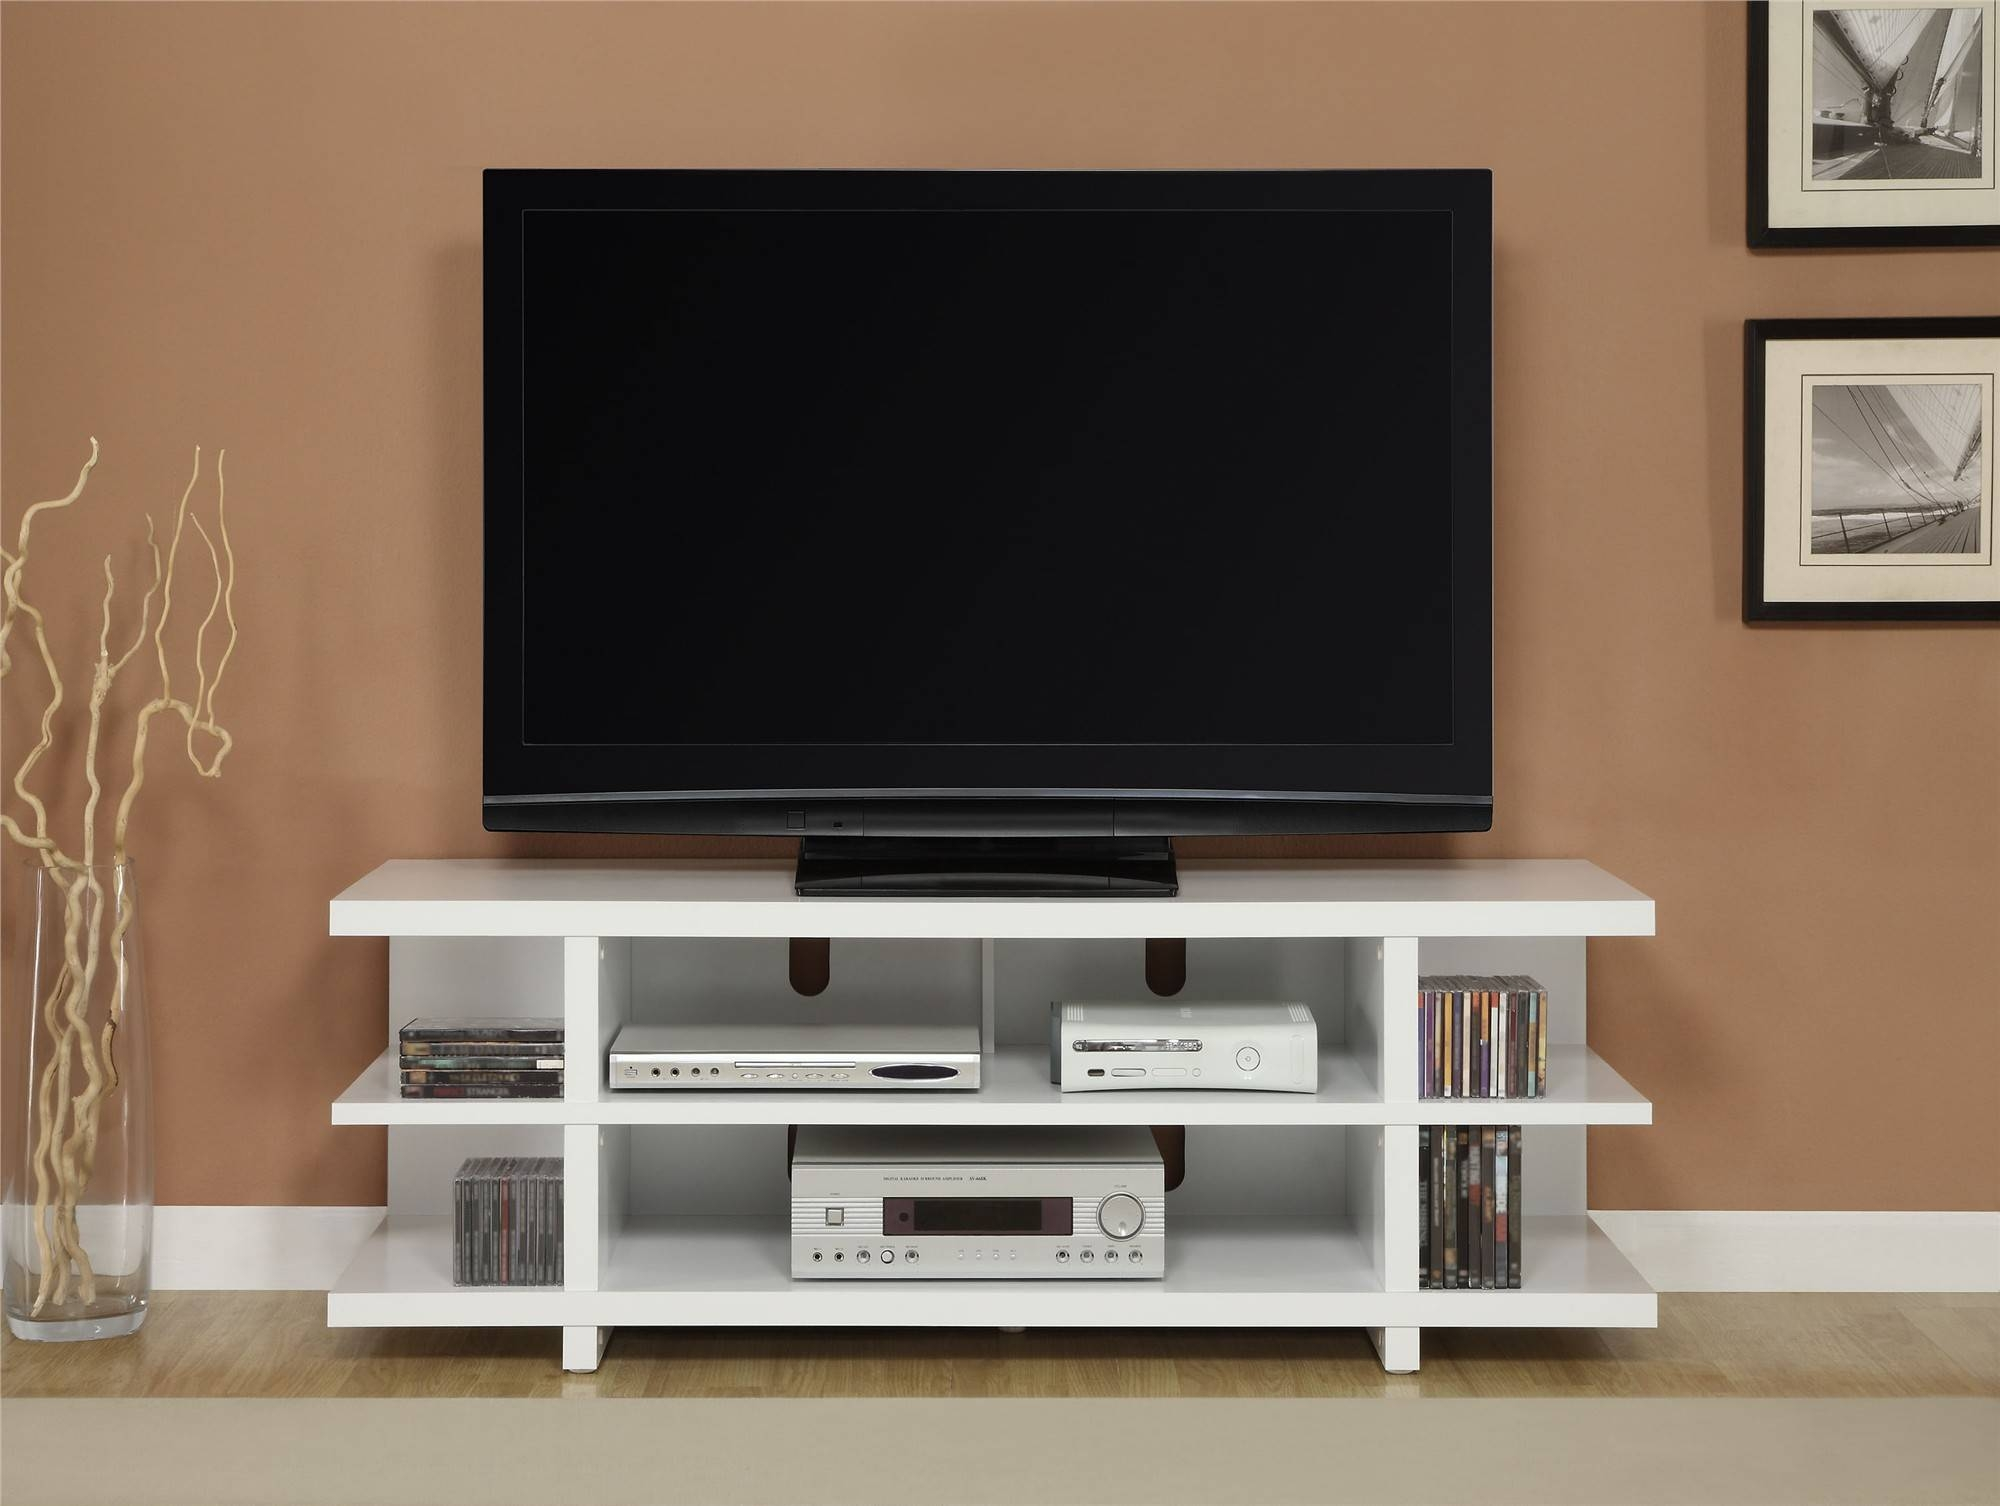 White Stained Wooden Tv Stand Having Several Open Shelves For in Contemporary Tv Cabinets for Flat Screens (Image 15 of 15)